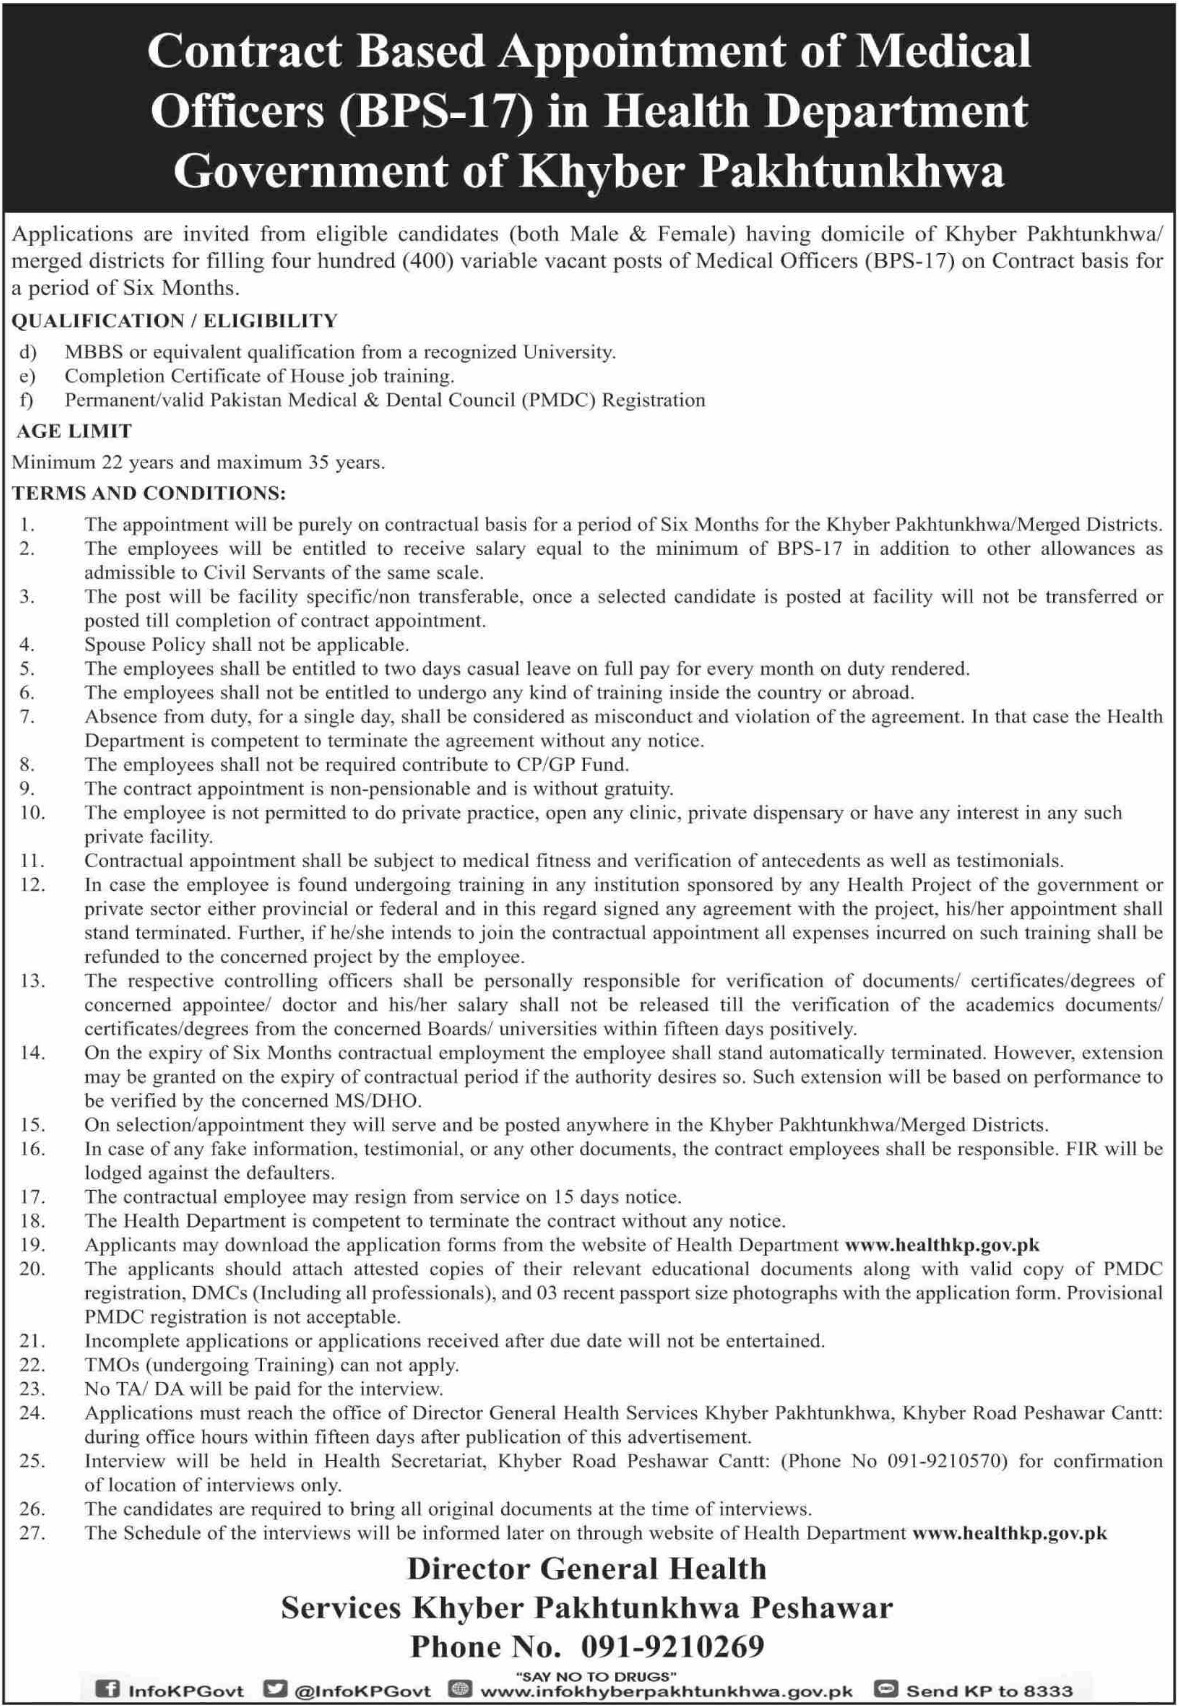 Health Department Government of Khyber Pakhtunkhwa Jobs 2019